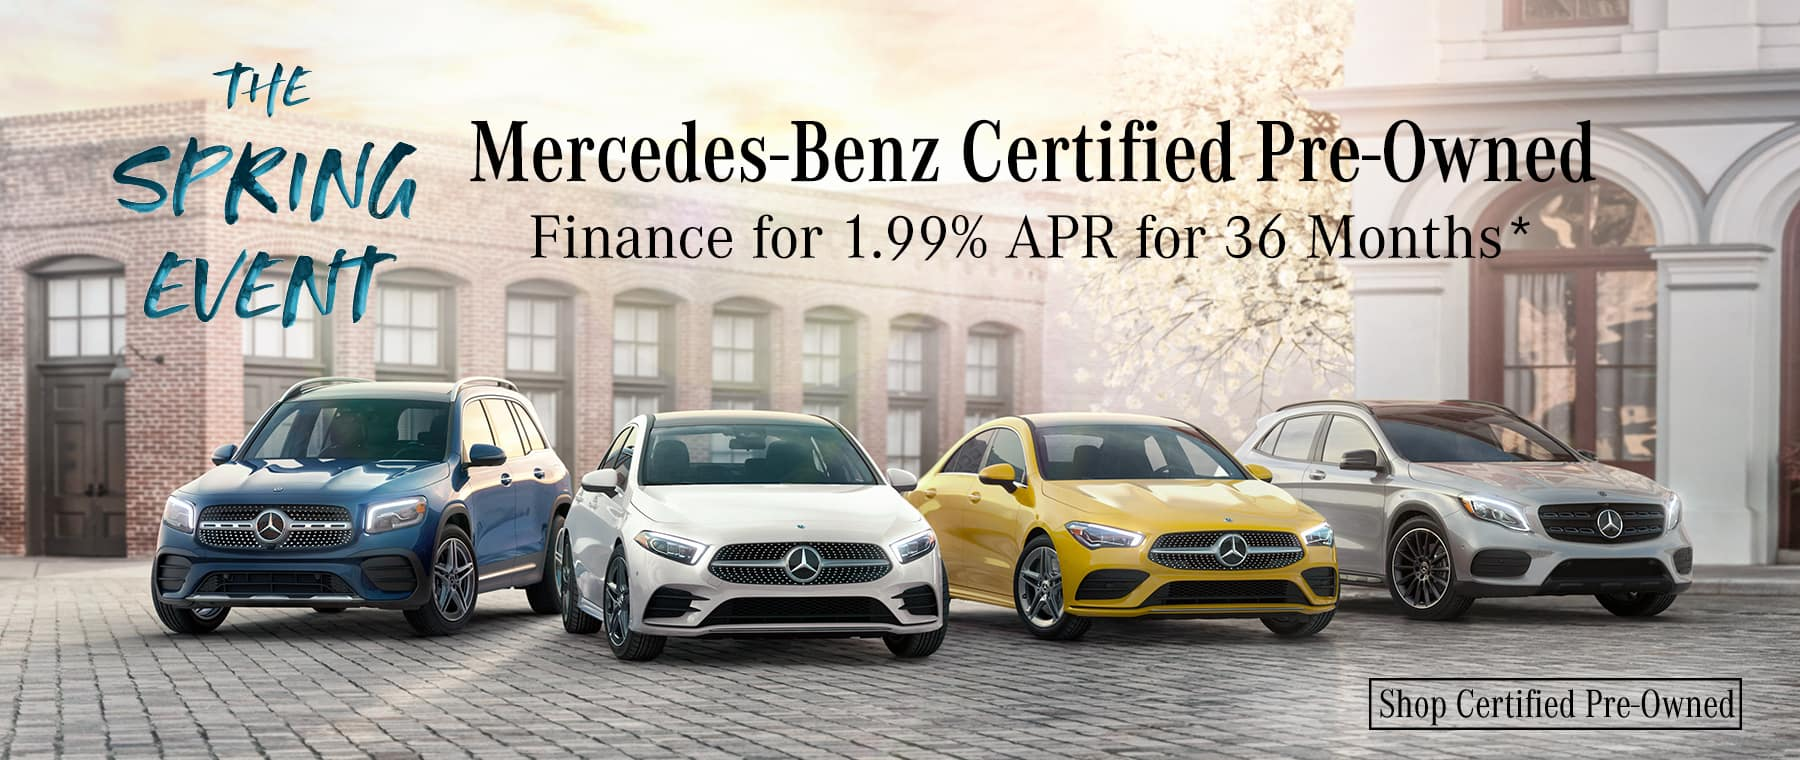 The Spring Event MB Certified Pre-Owned